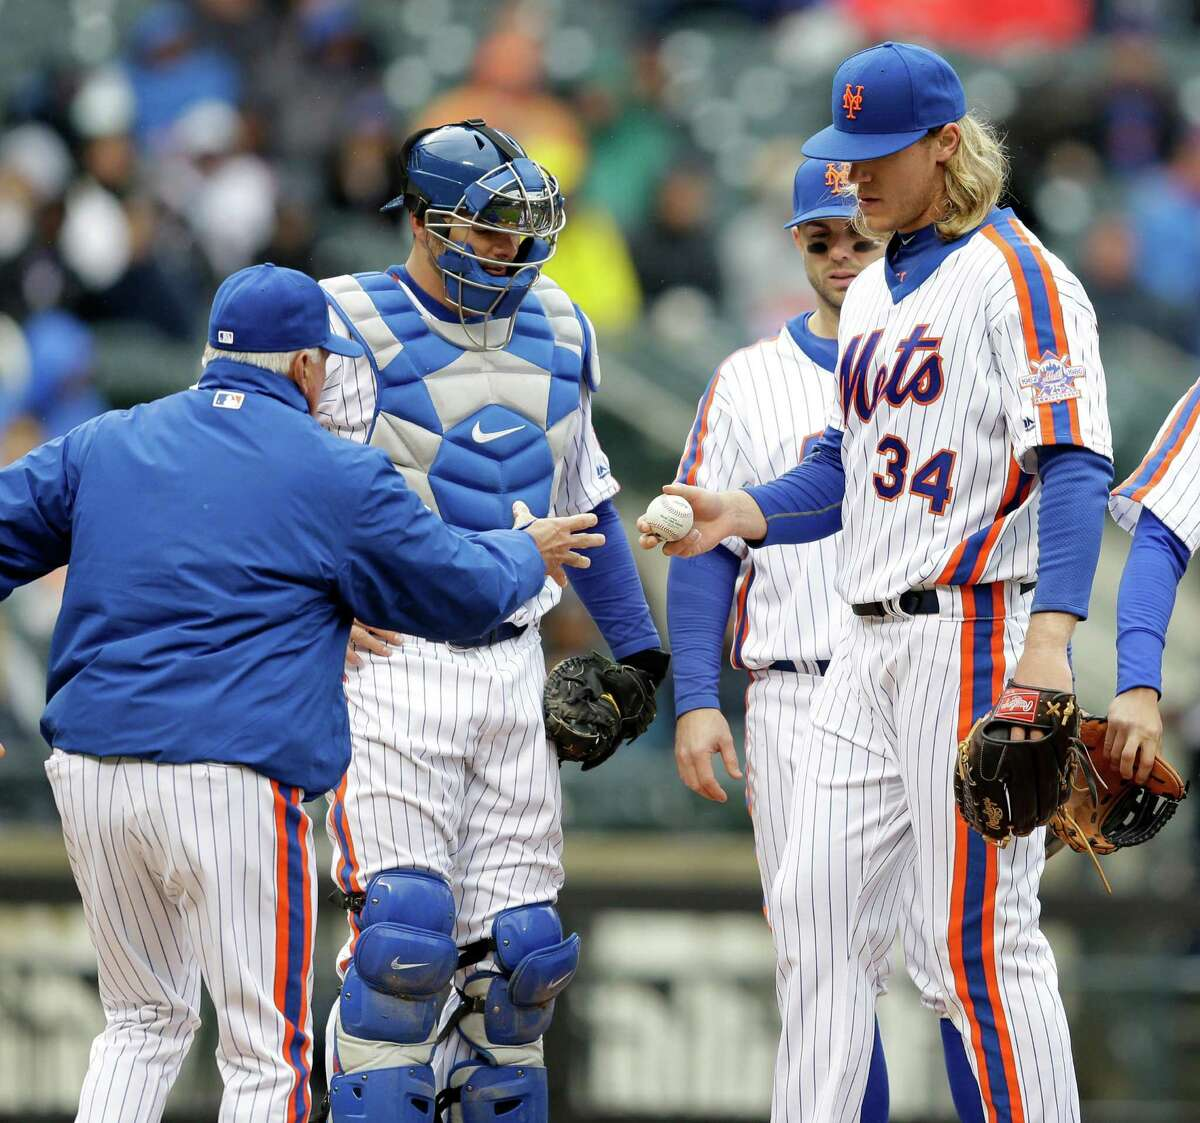 New York Mets starting pitcher Noah Syndergaard, right, leaves a baseball game during the sixth inning against the San Francisco Giants, Sunday, May 1, 2016 in New York. (AP Photo/Seth Wenig) ORG XMIT: NYSW114